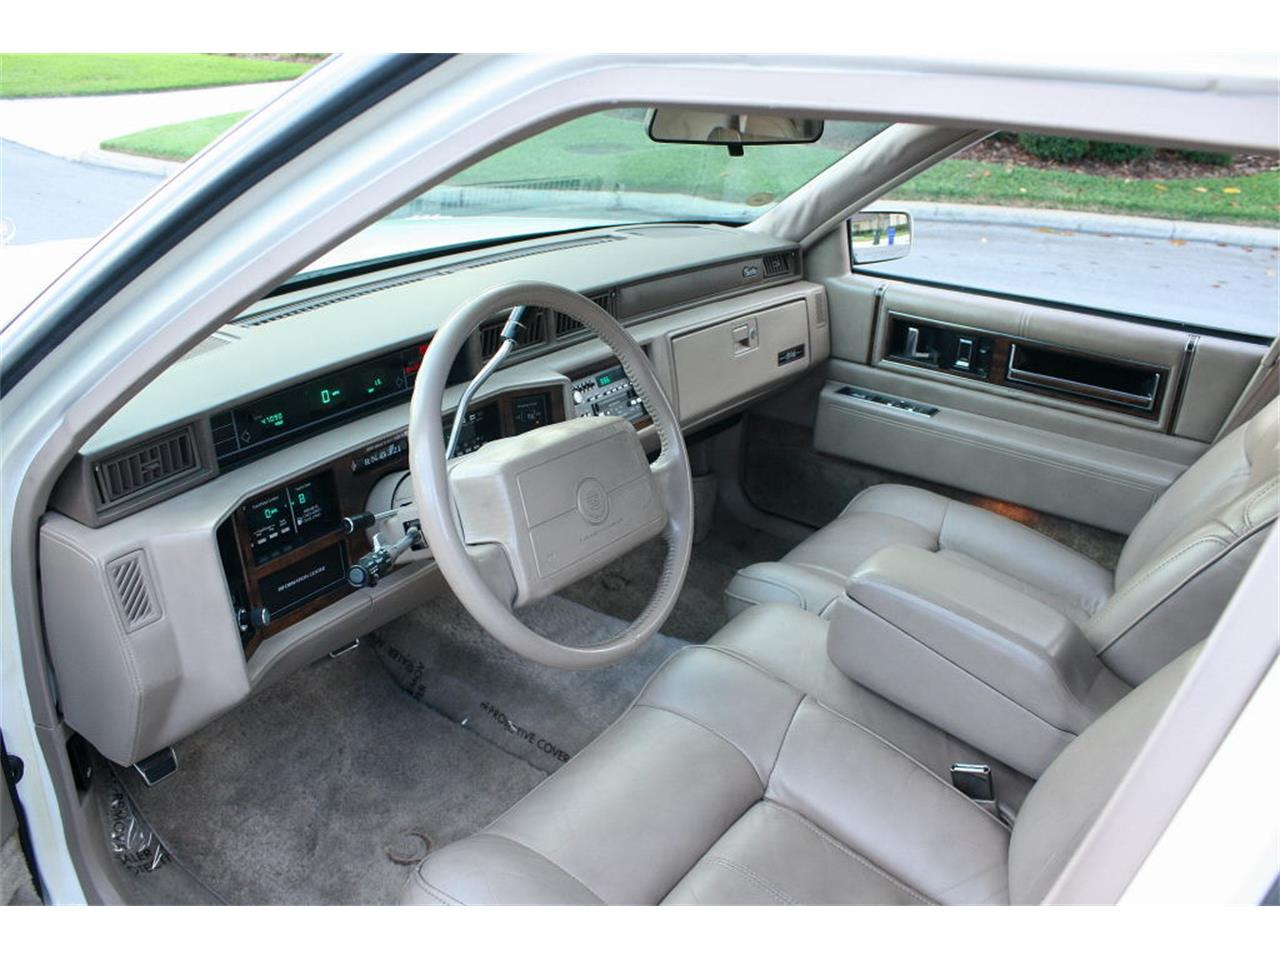 Large Picture of 1991 Cadillac Sedan located in Florida - $9,500.00 Offered by MJC Classic Cars - L5XM